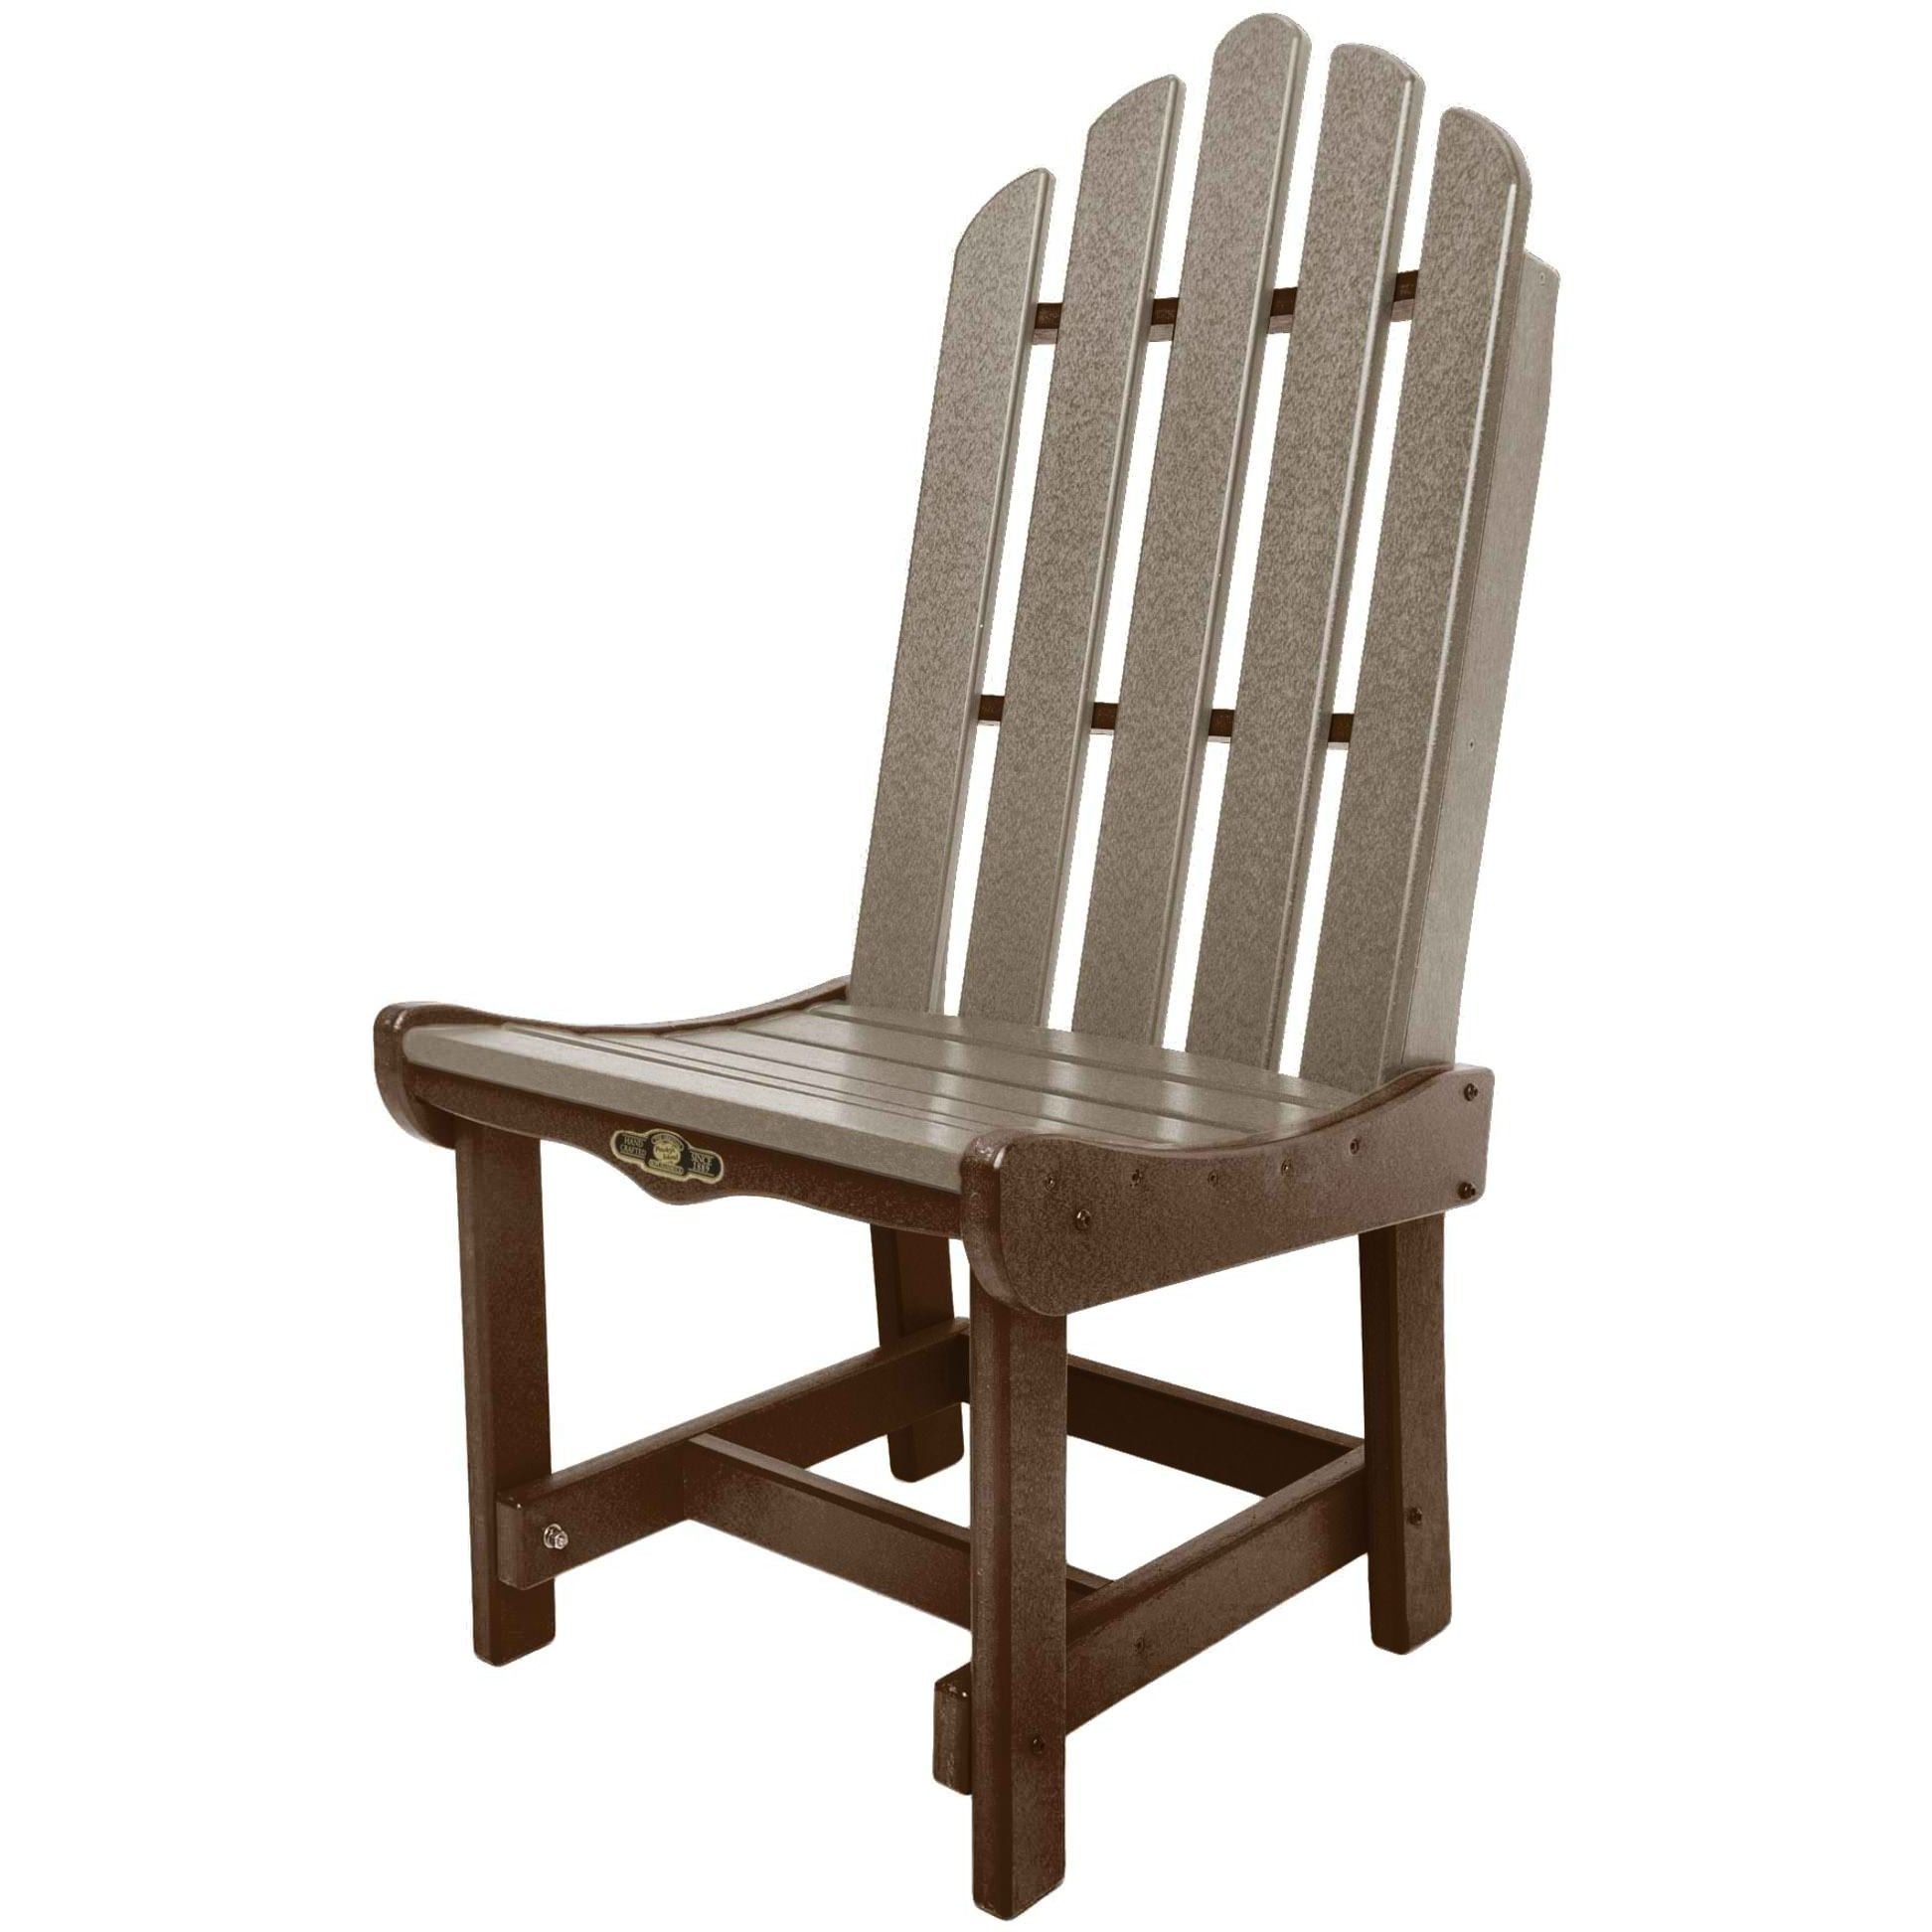 Lovely Pawleys Island Durawood Essentials Dining Chair